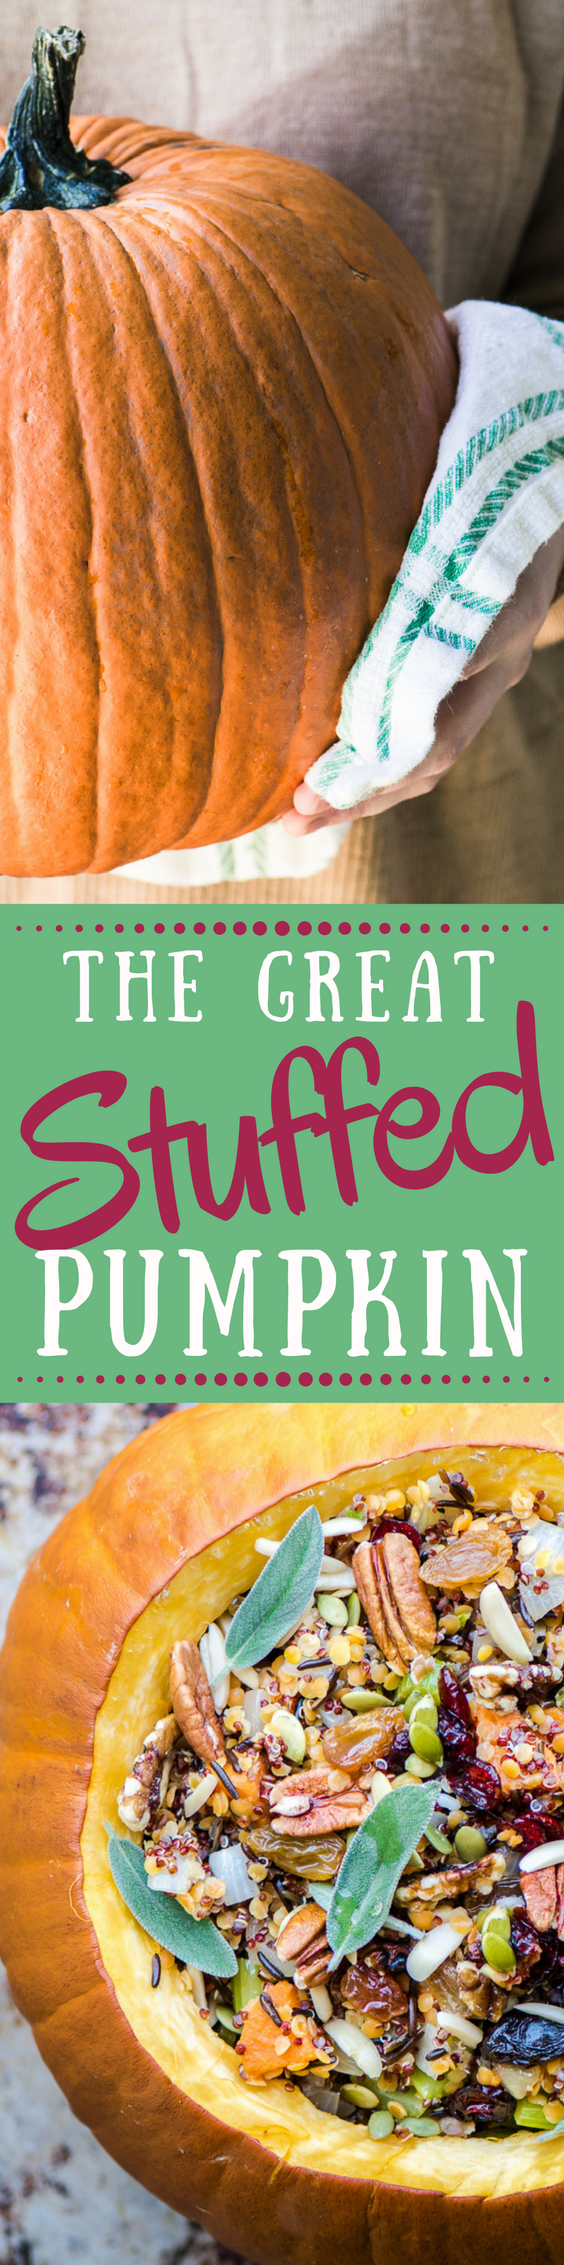 The Great Stuffed Pumpkin is a dramatic vegan holiday side dish or main course ~ however you plan to serve it, it will command center stage on your table! ~ theviewromgreatisland.com